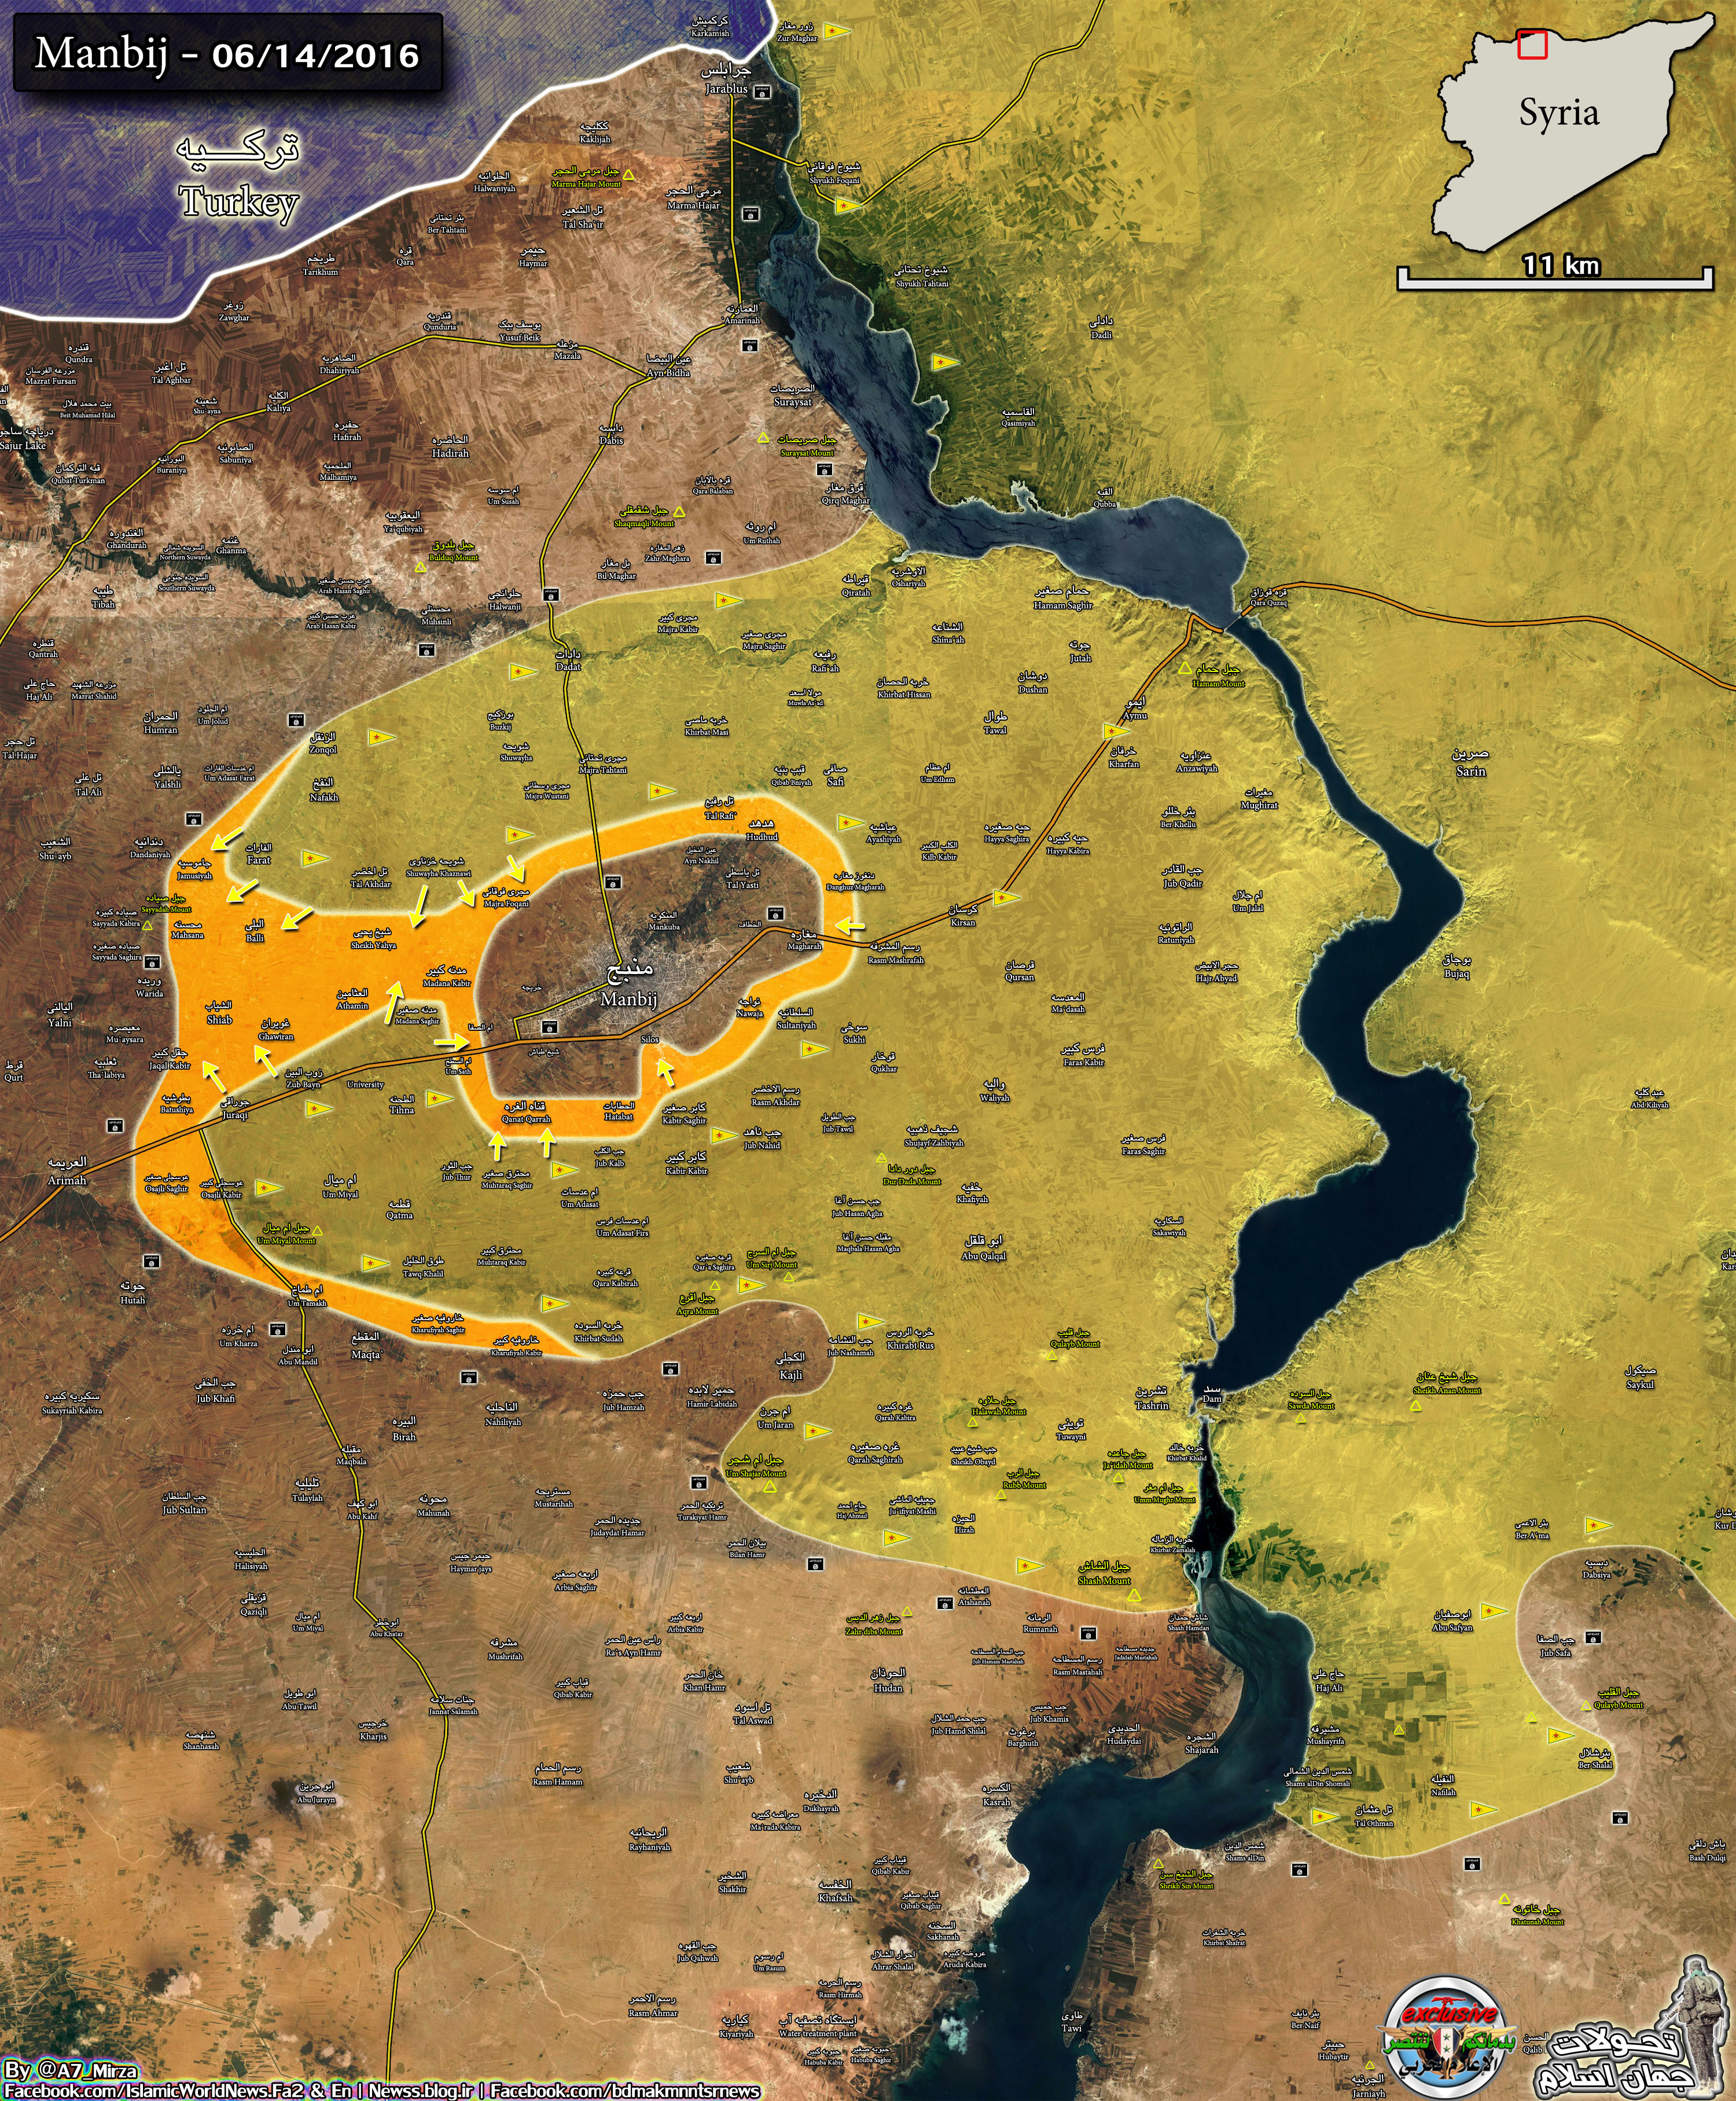 Military Situation near Syria's Manbij on June 14